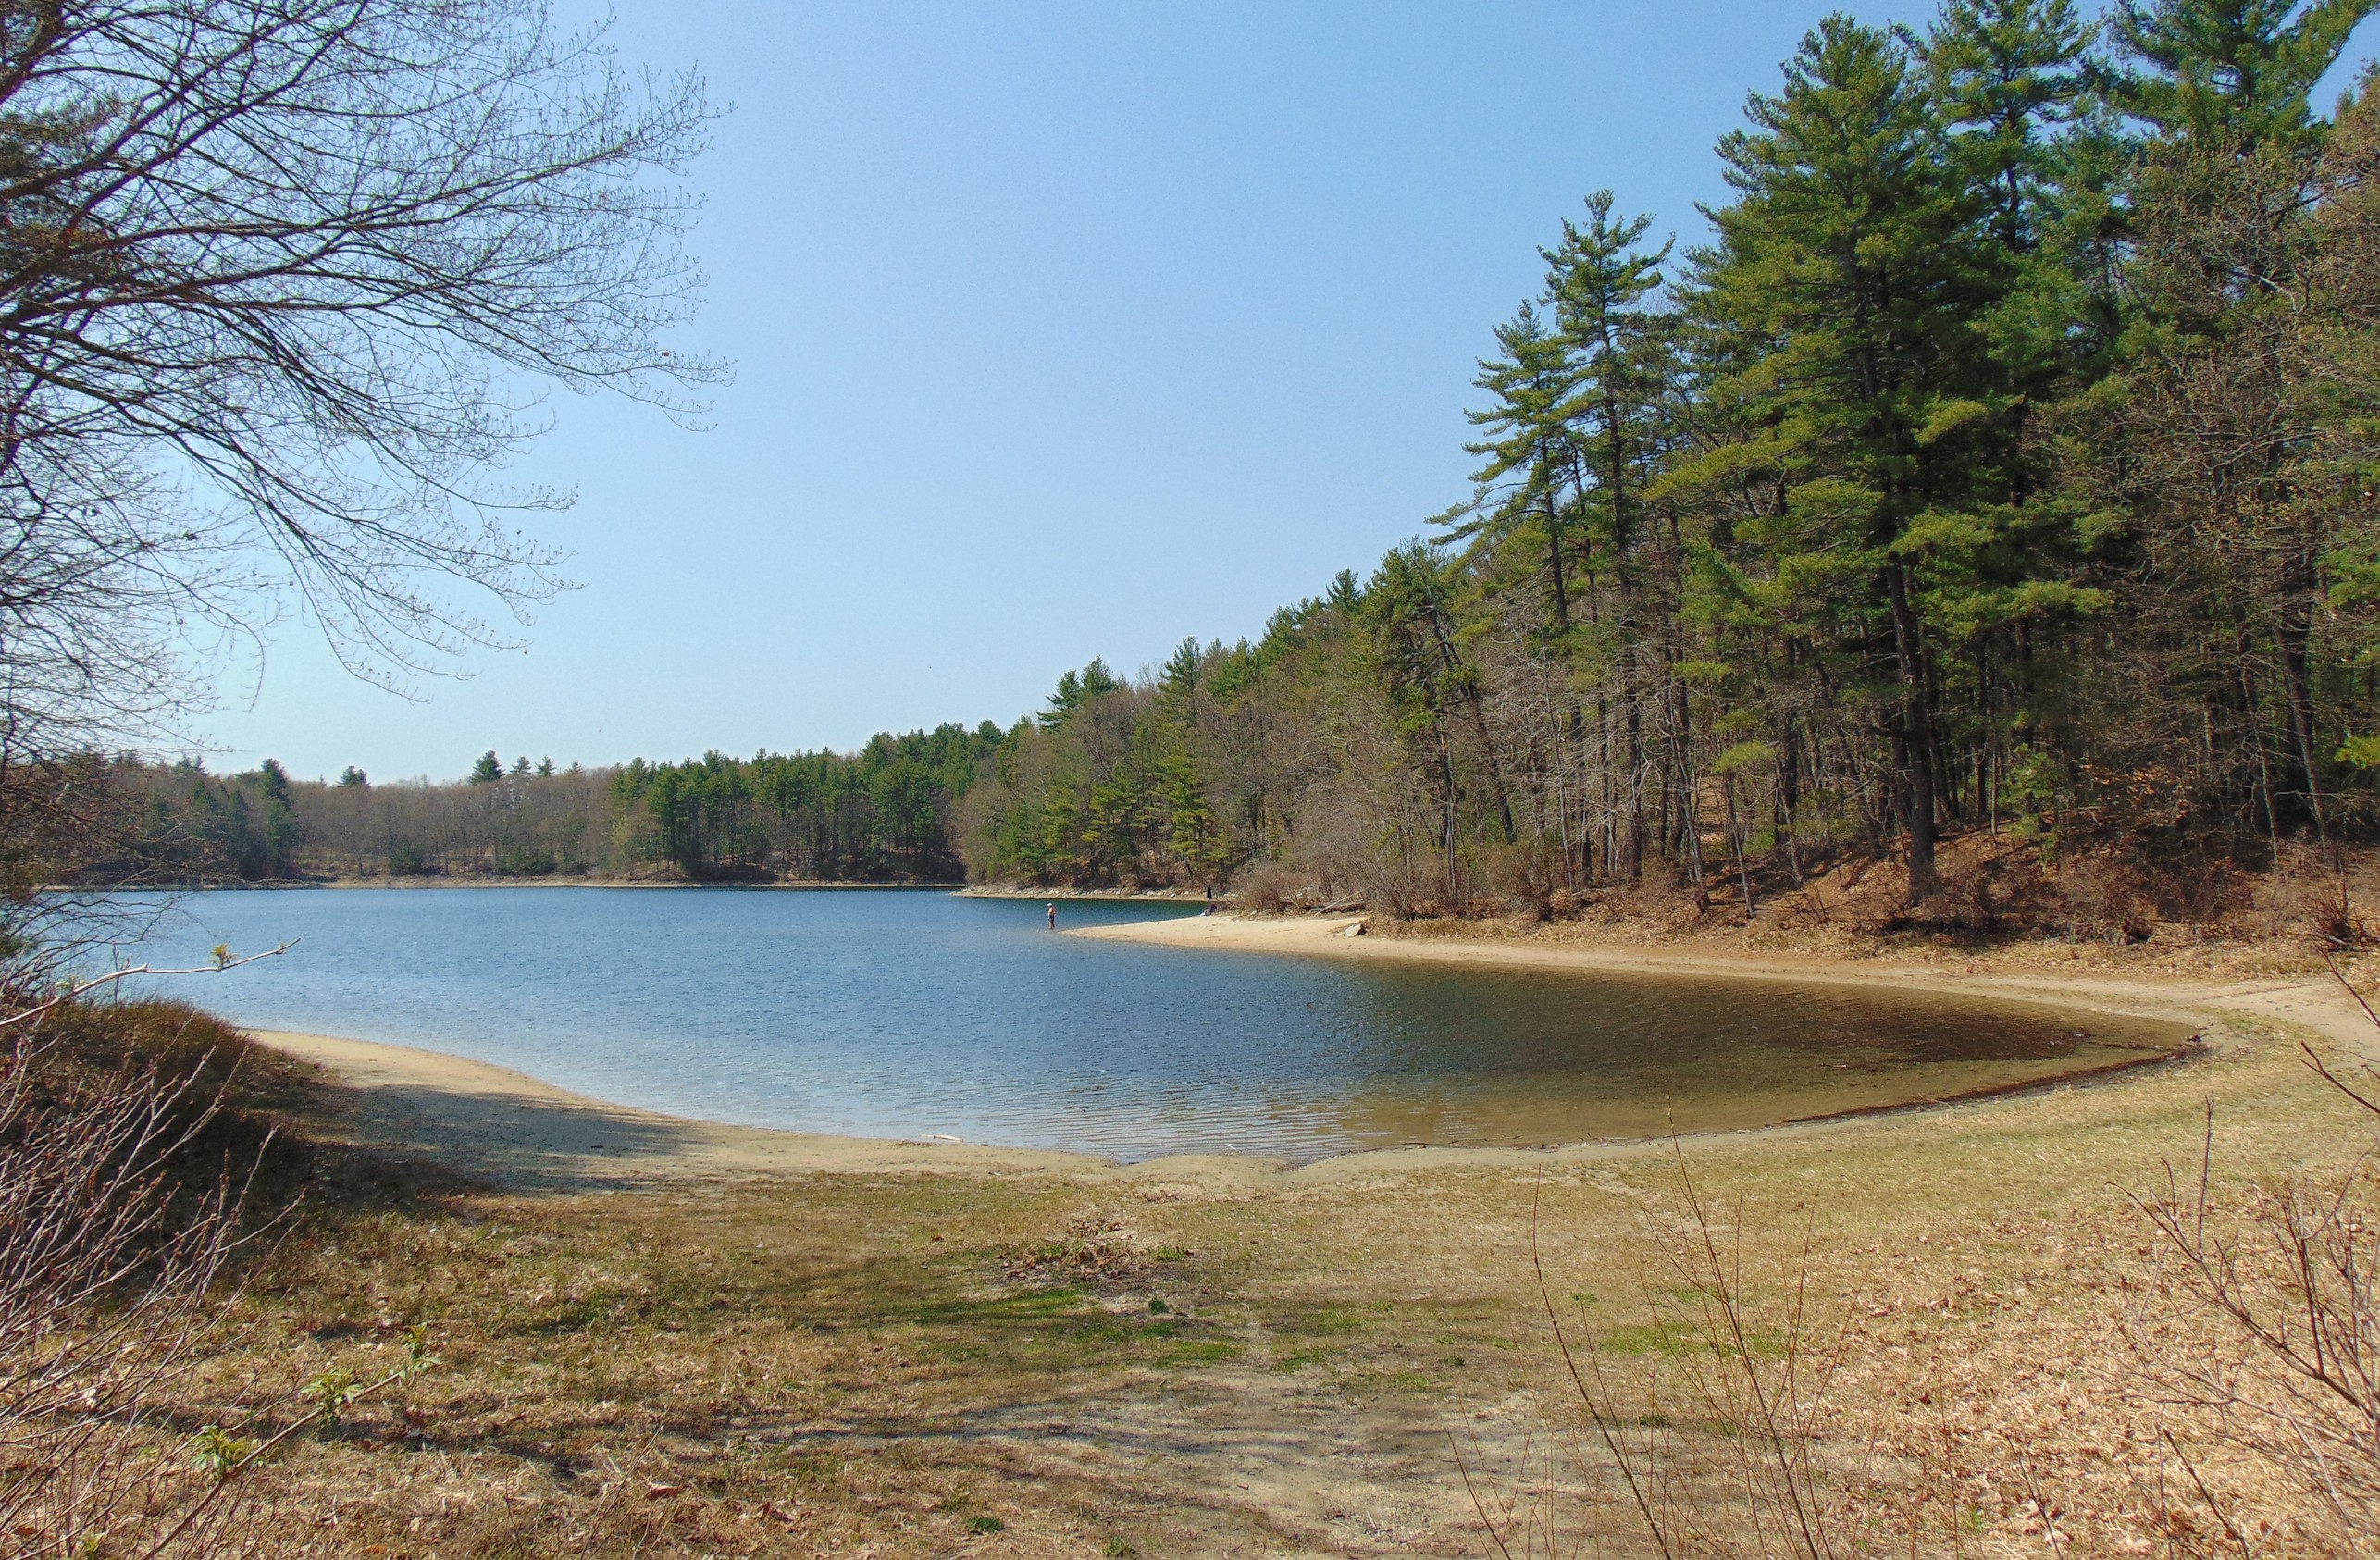 After years of human activity, climate change, and pollution, the Walden Pond of today is different from the iconic, idealistic setting Thoreau praised in his works.